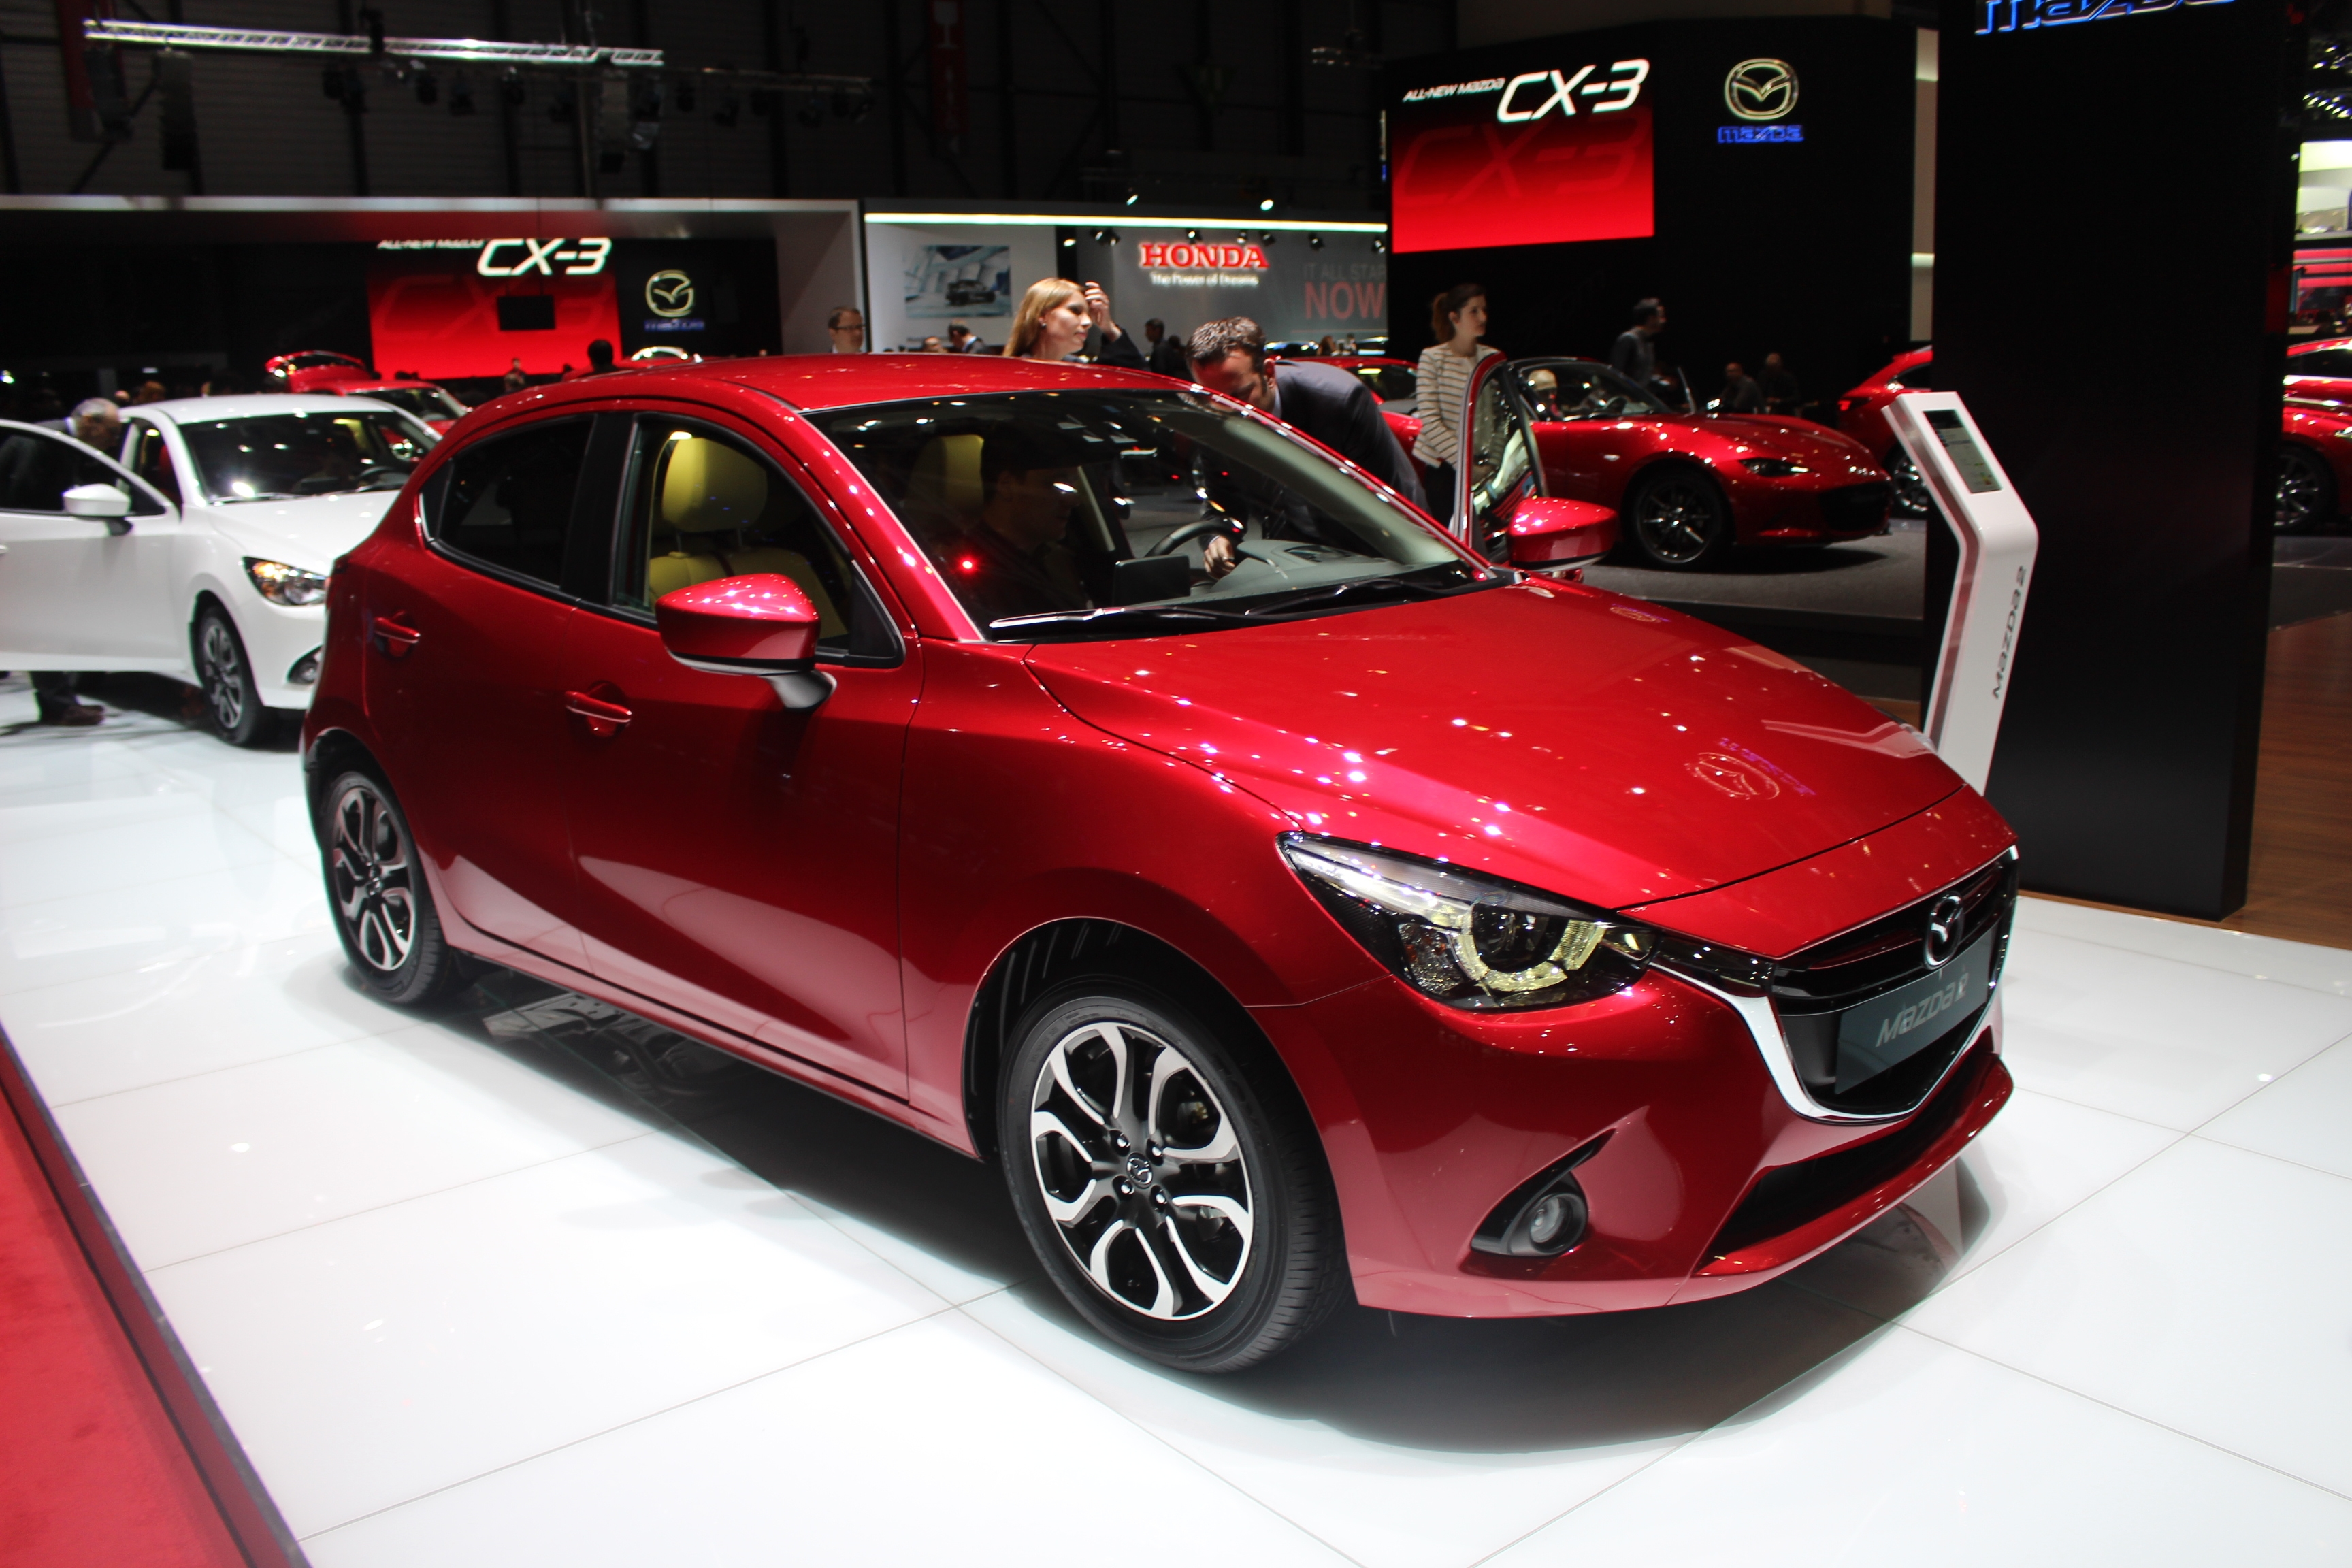 Mazda 2 s duisante vid o en direct du salon de gen ve 2015 - Geneve 2015 salon ...